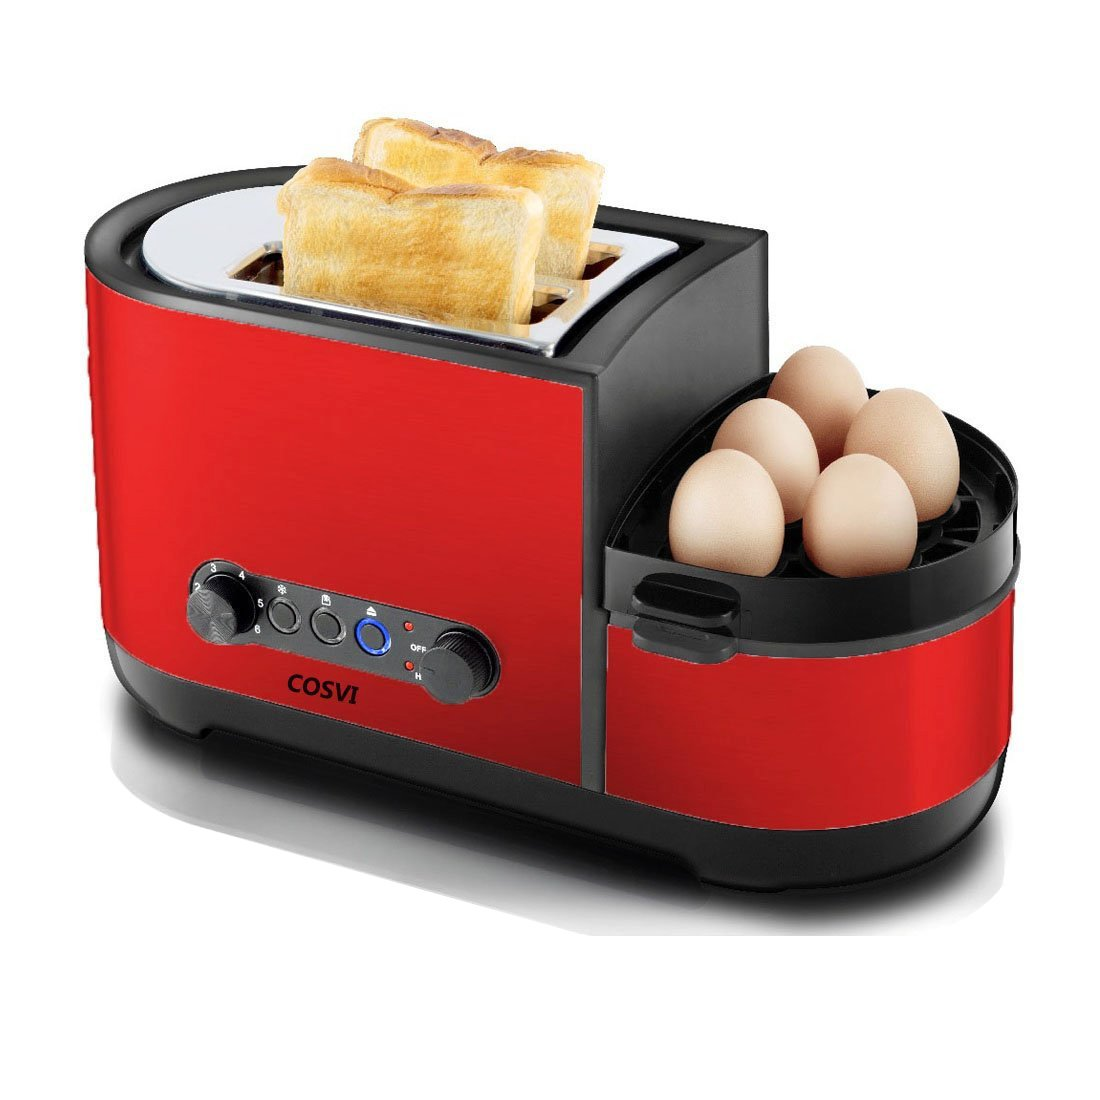 COSVII Red Toaster 2 Slice with Egg Maker, Extra Wide Slots, Removable Crumb Tray, 7-shade Selector, Led Indicator Function, Cancel Function, Cool Touch Stainless Steel Toaster for Bread and Bagel